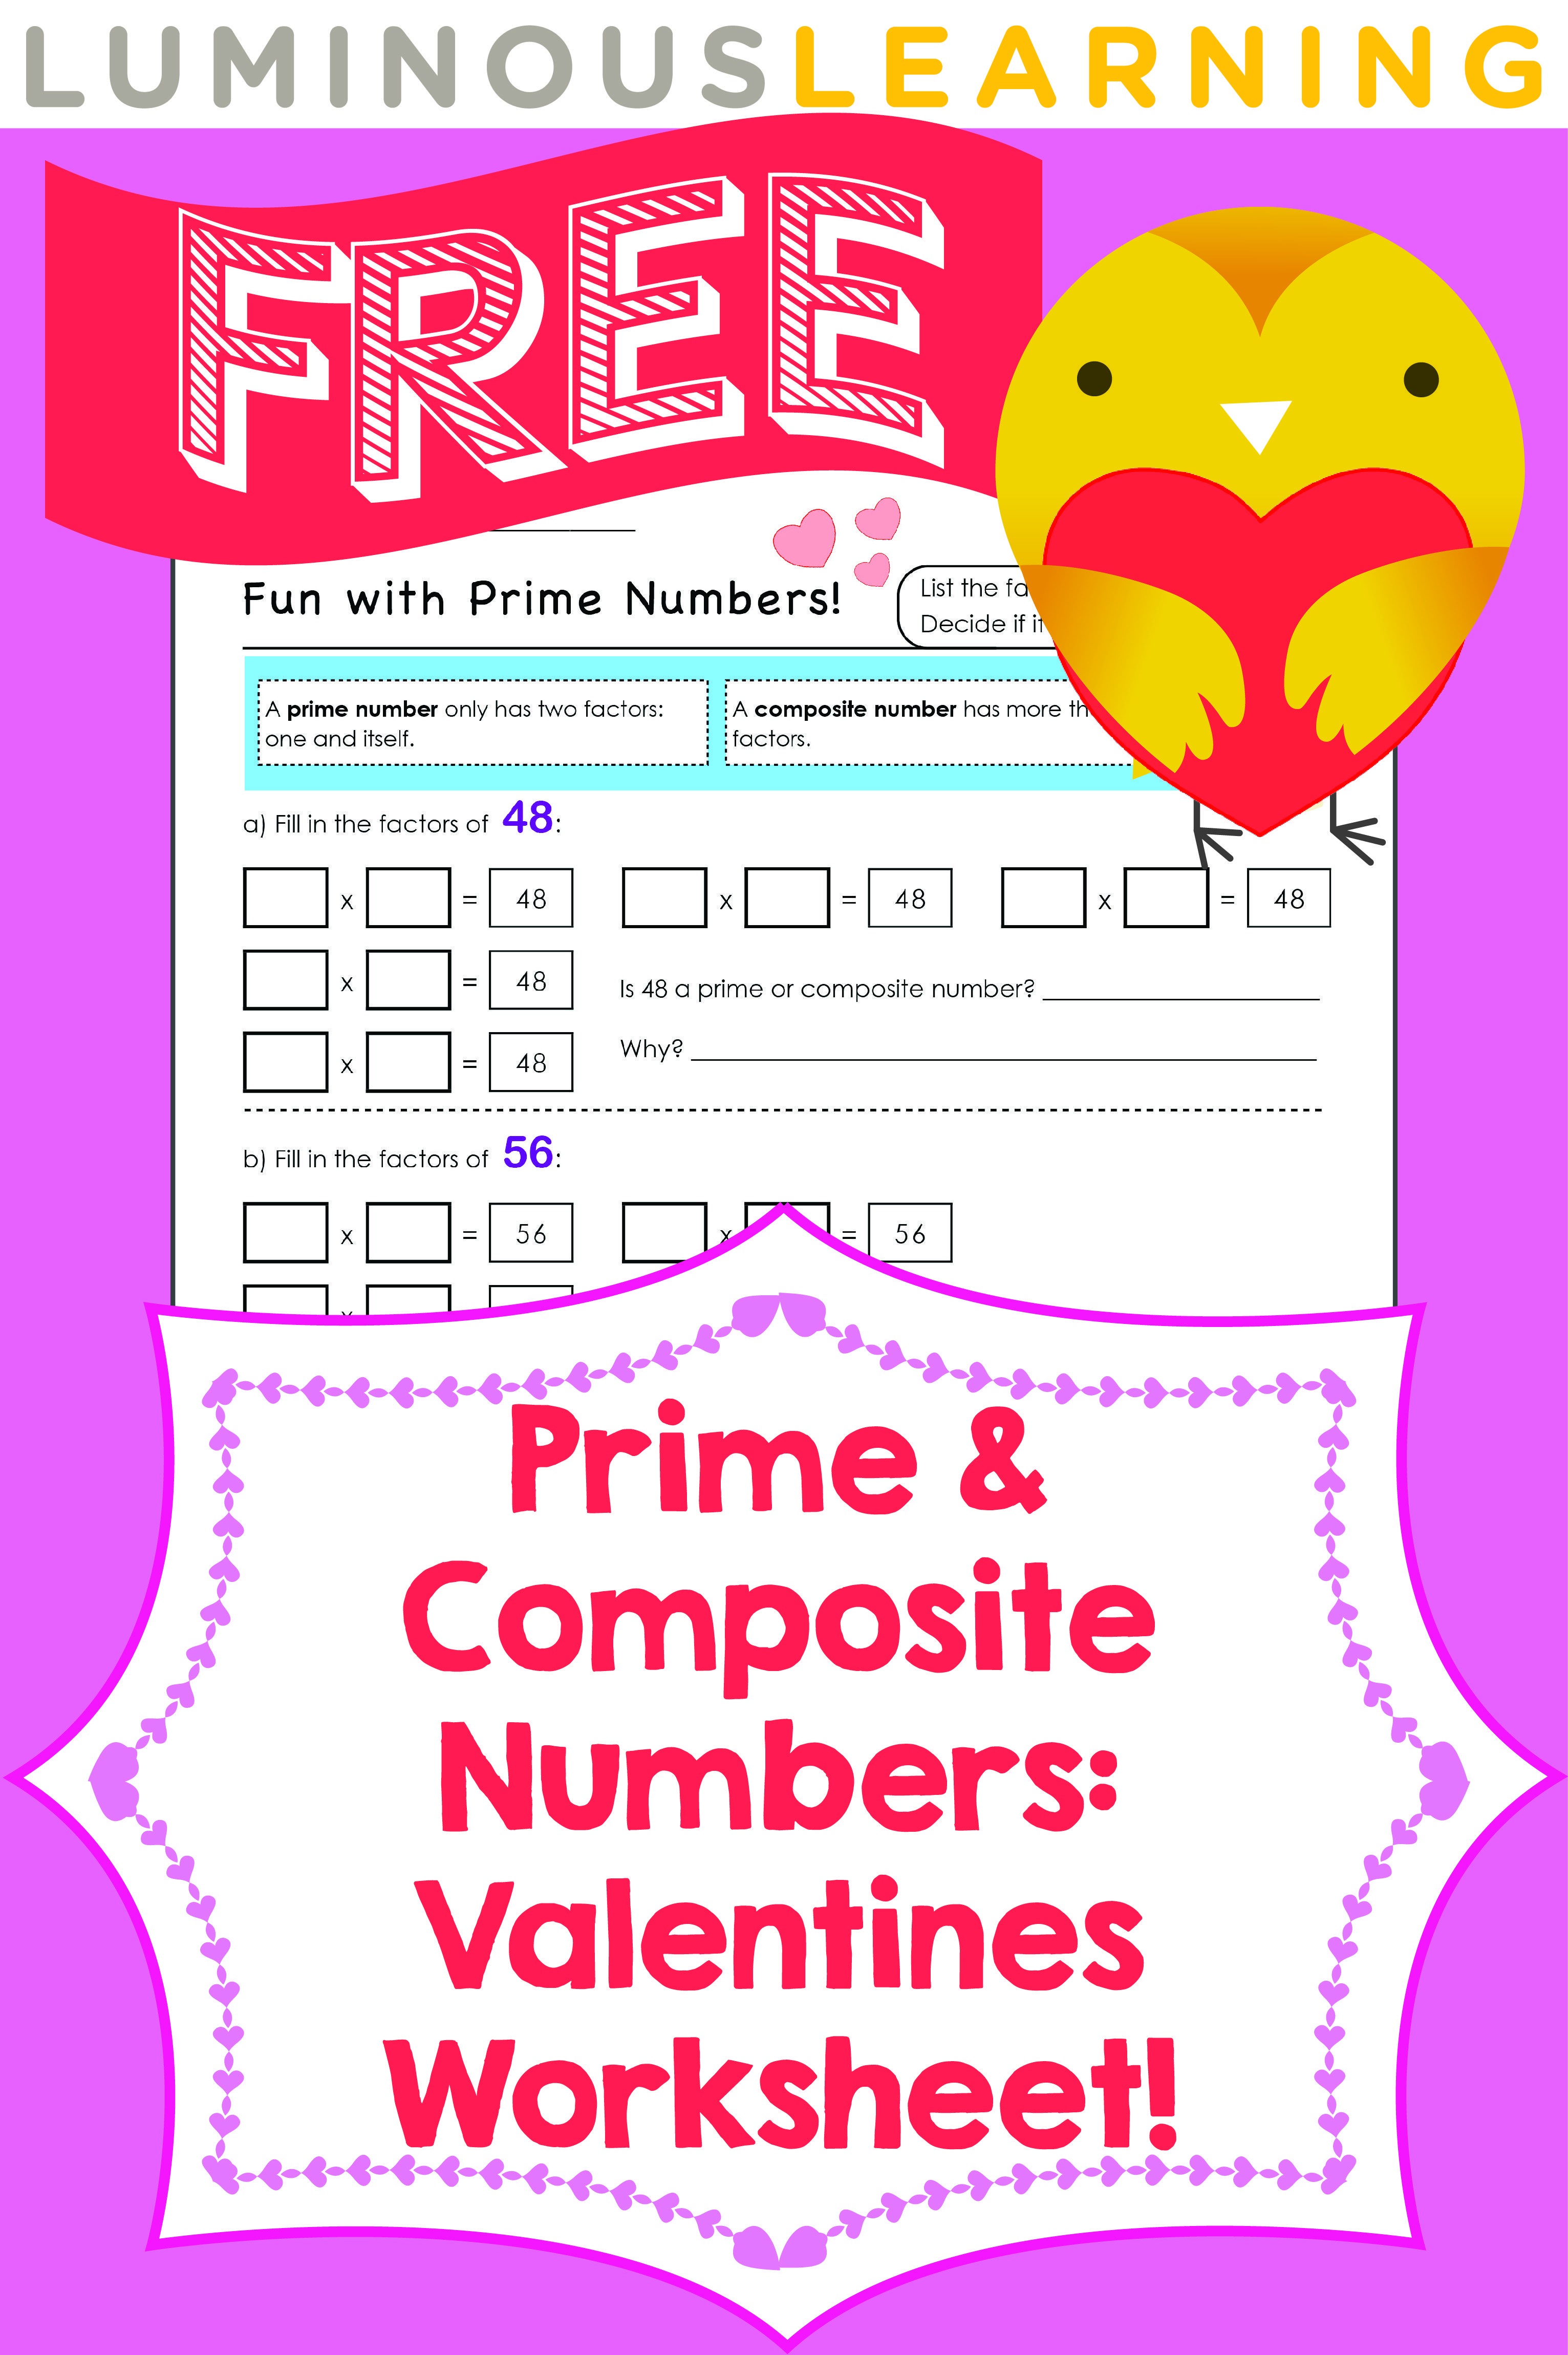 Uncategorized Math Worksheets Prime And Composite Numbers luminous learning free valentines worksheet prime and composite numbers check out all our free